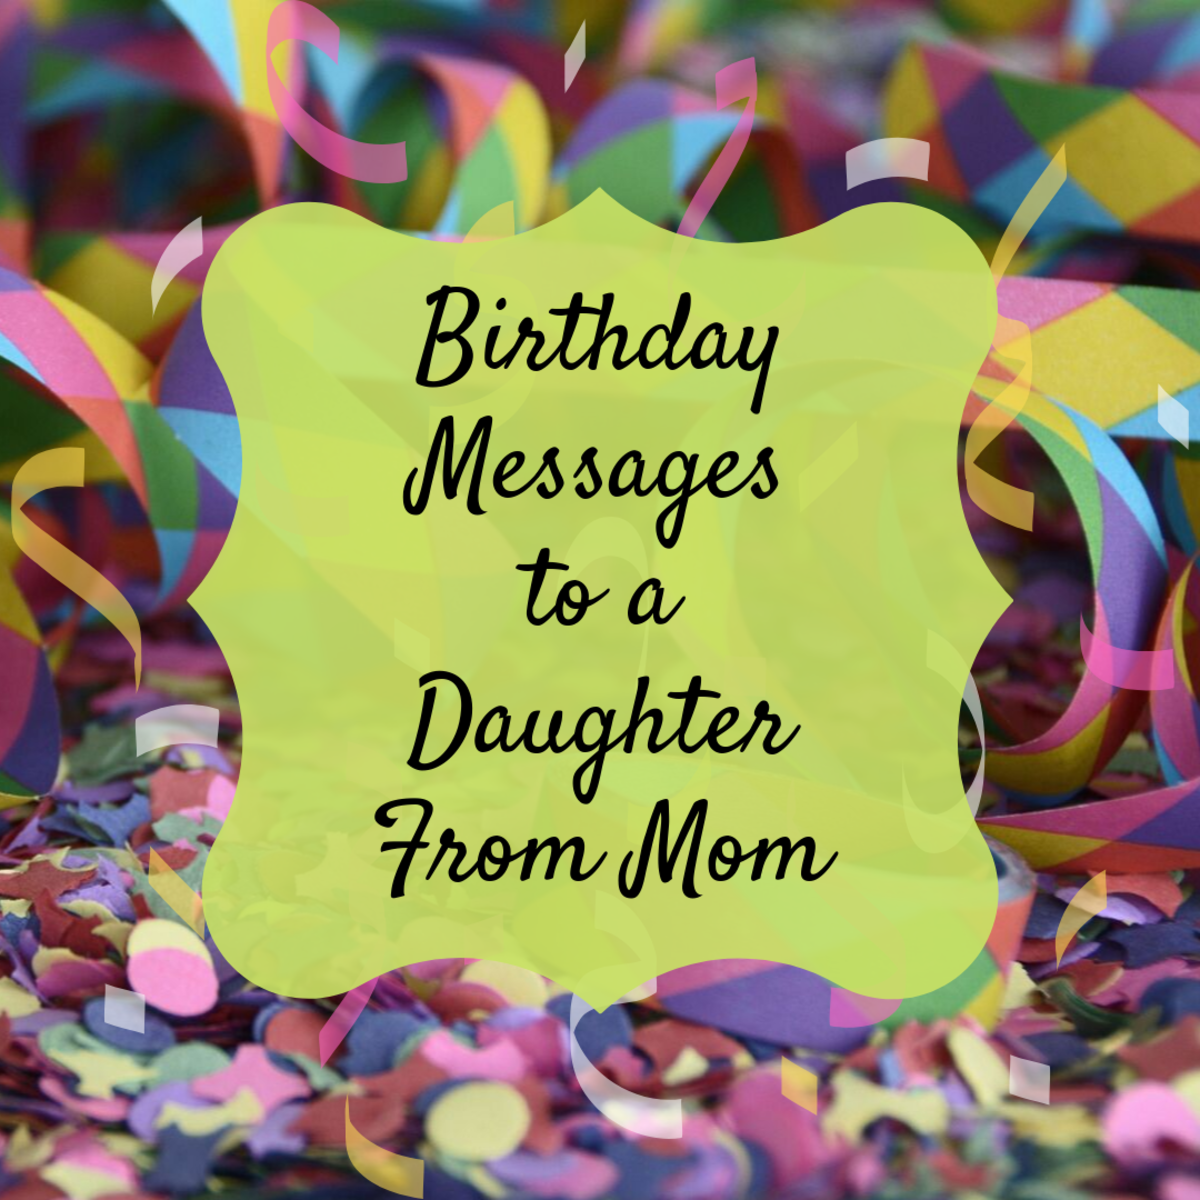 Outstanding Birthday Wishes Texts And Quotes For A Daughter From Mom Holidappy Personalised Birthday Cards Paralily Jamesorg